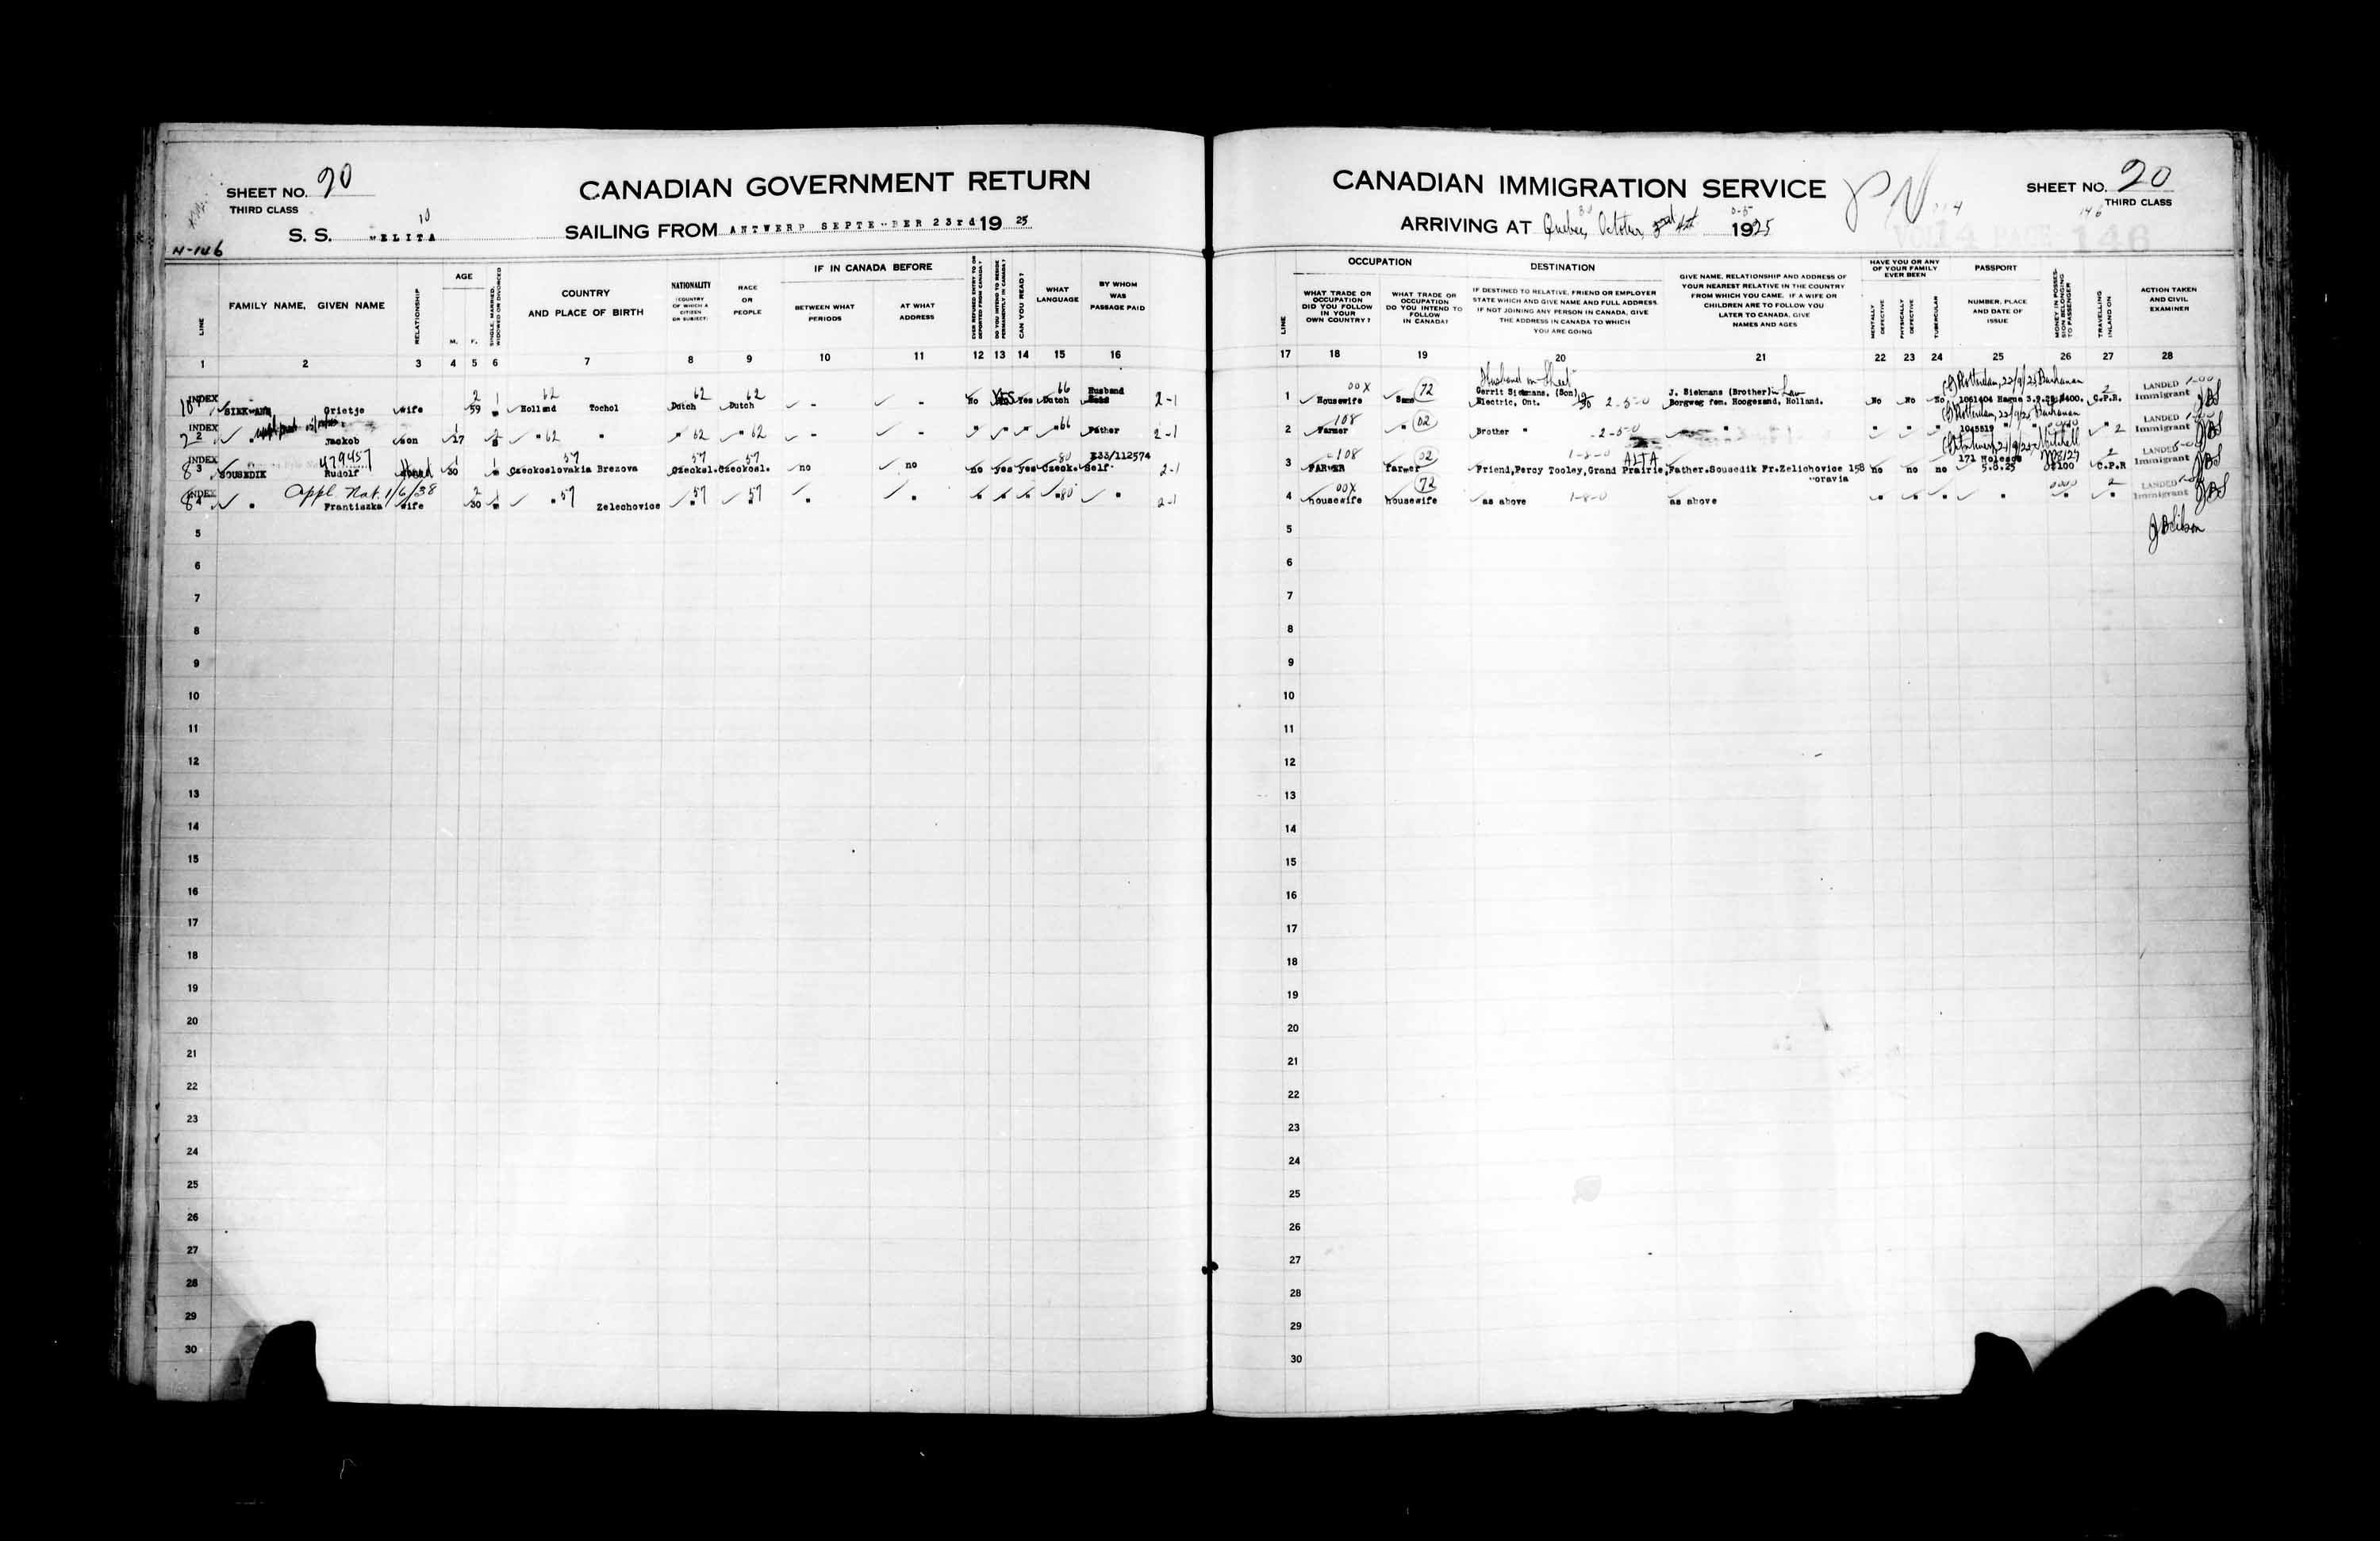 Title: Passenger Lists: Quebec City (1925-1935) - Mikan Number: 134839 - Microform: t-14720